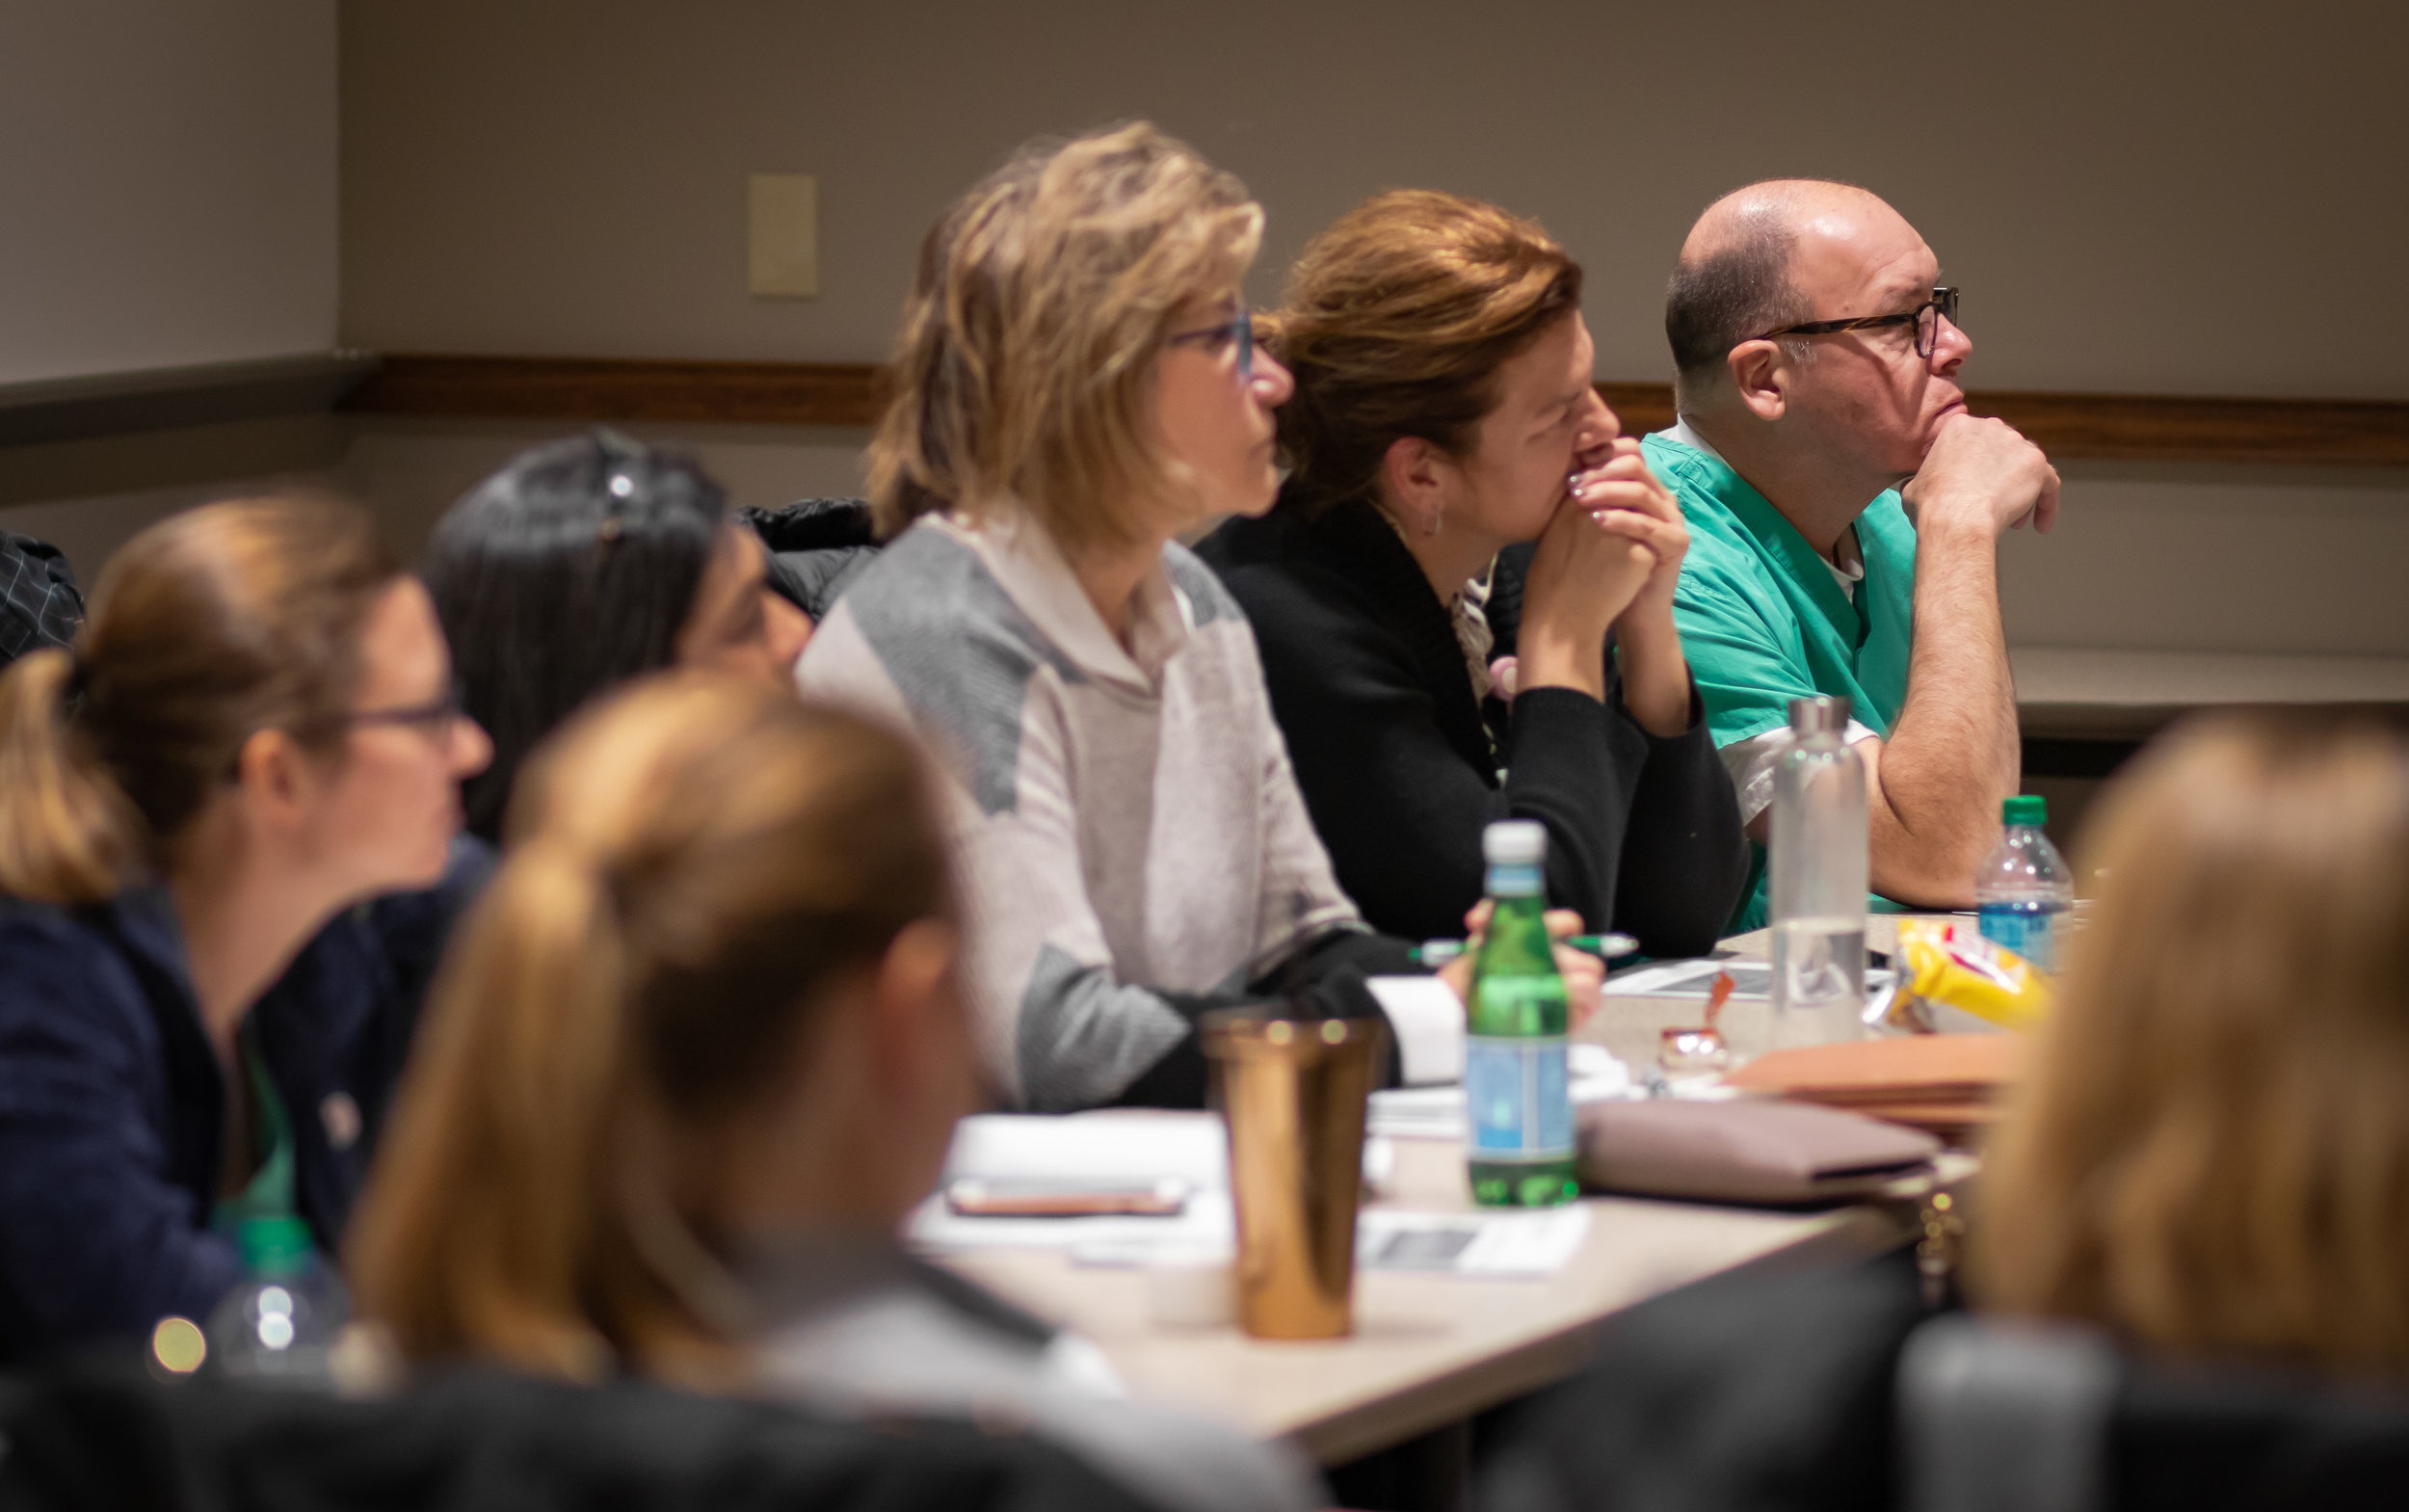 Doctors listen to a presenter during December's PLA class session